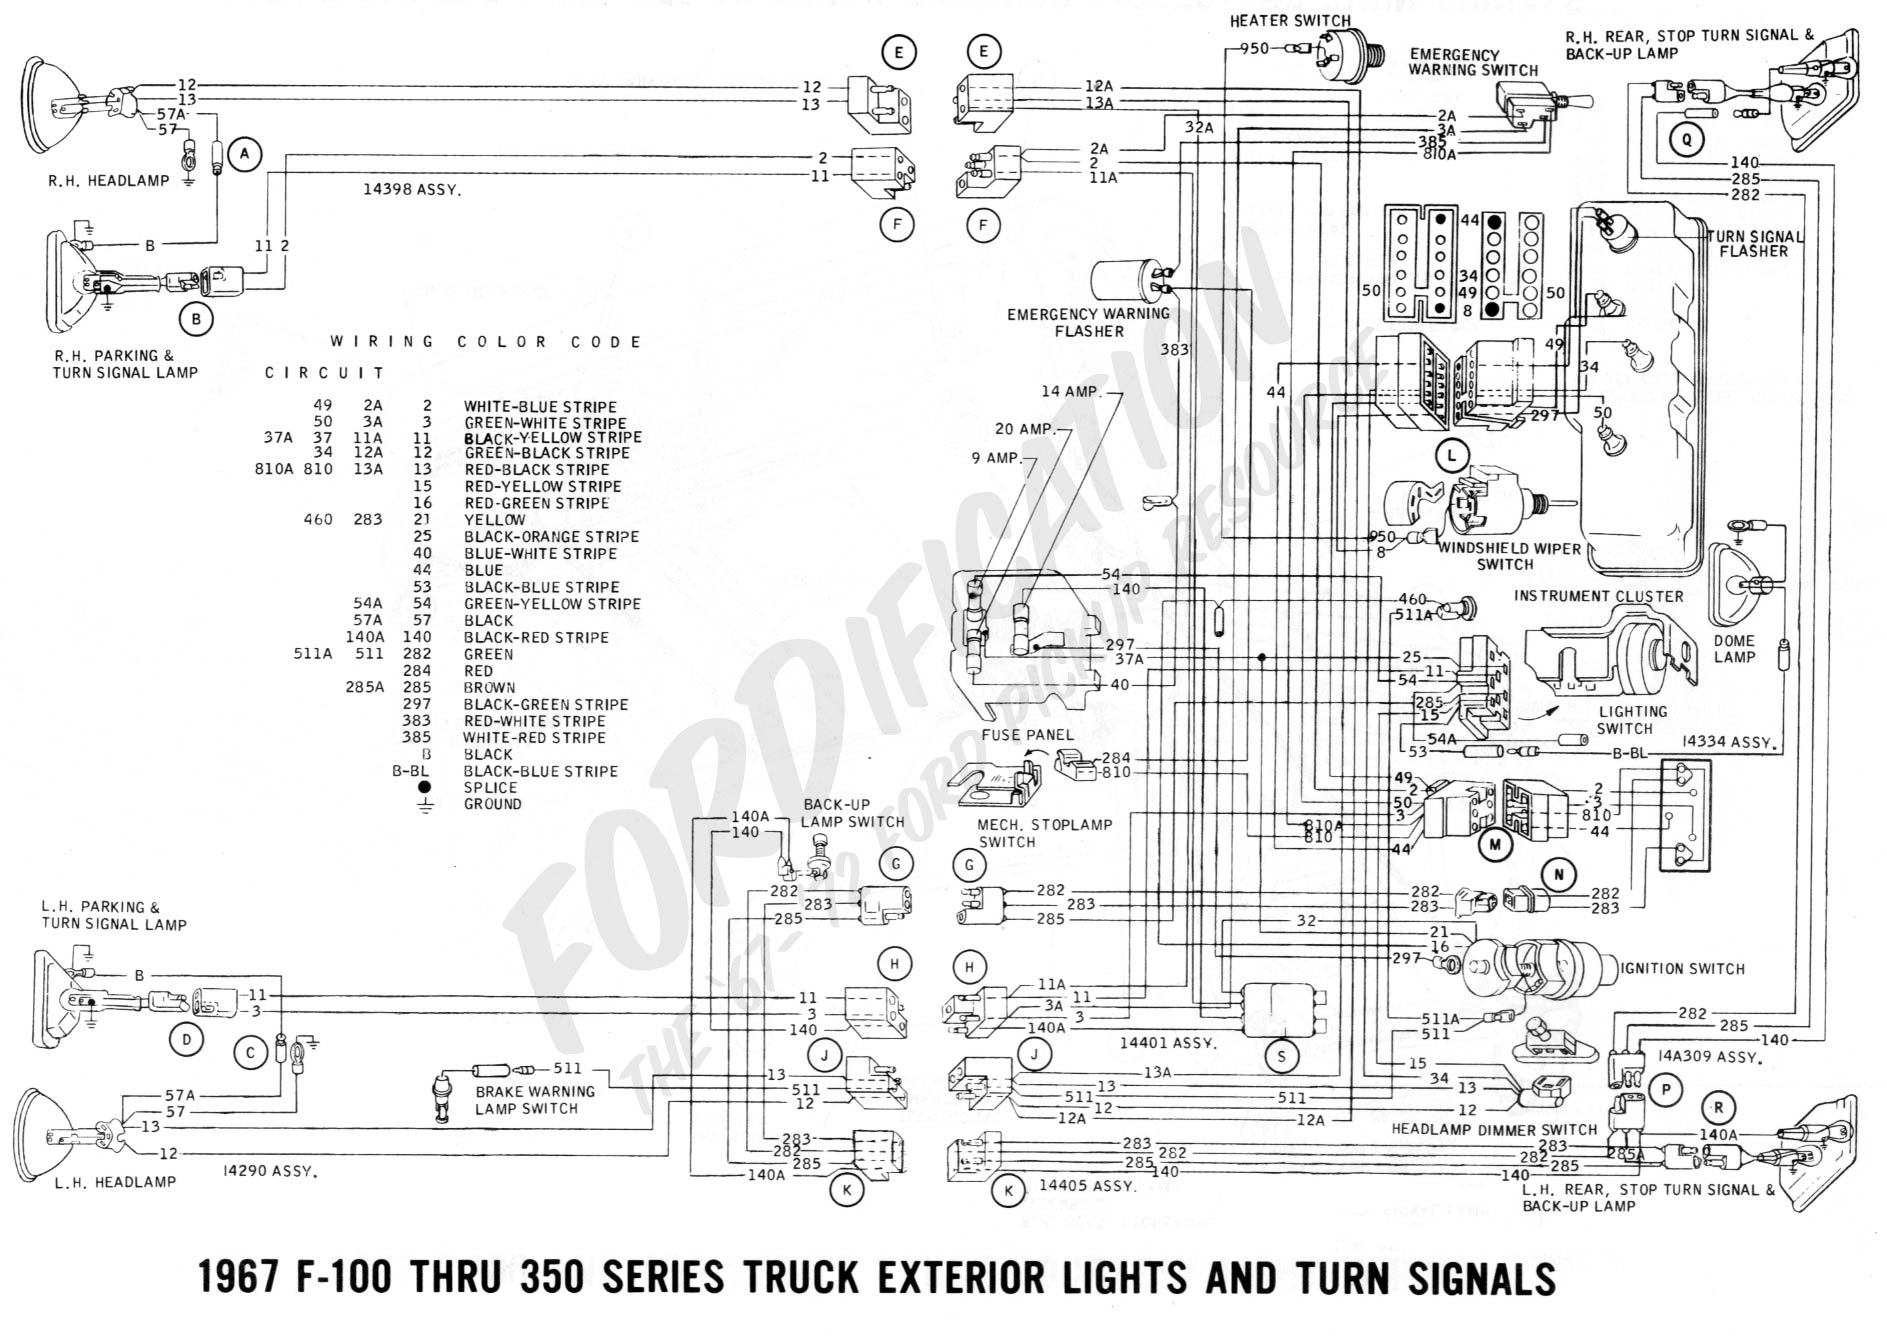 80 wiring_1967extlights02_d29b57c9dc89e064381e9d66fb89835ca3405bcc diagrams 12511637 ford falcon wiring diagram 63 falcon wiring 1963 ford falcon wiring harness at gsmx.co